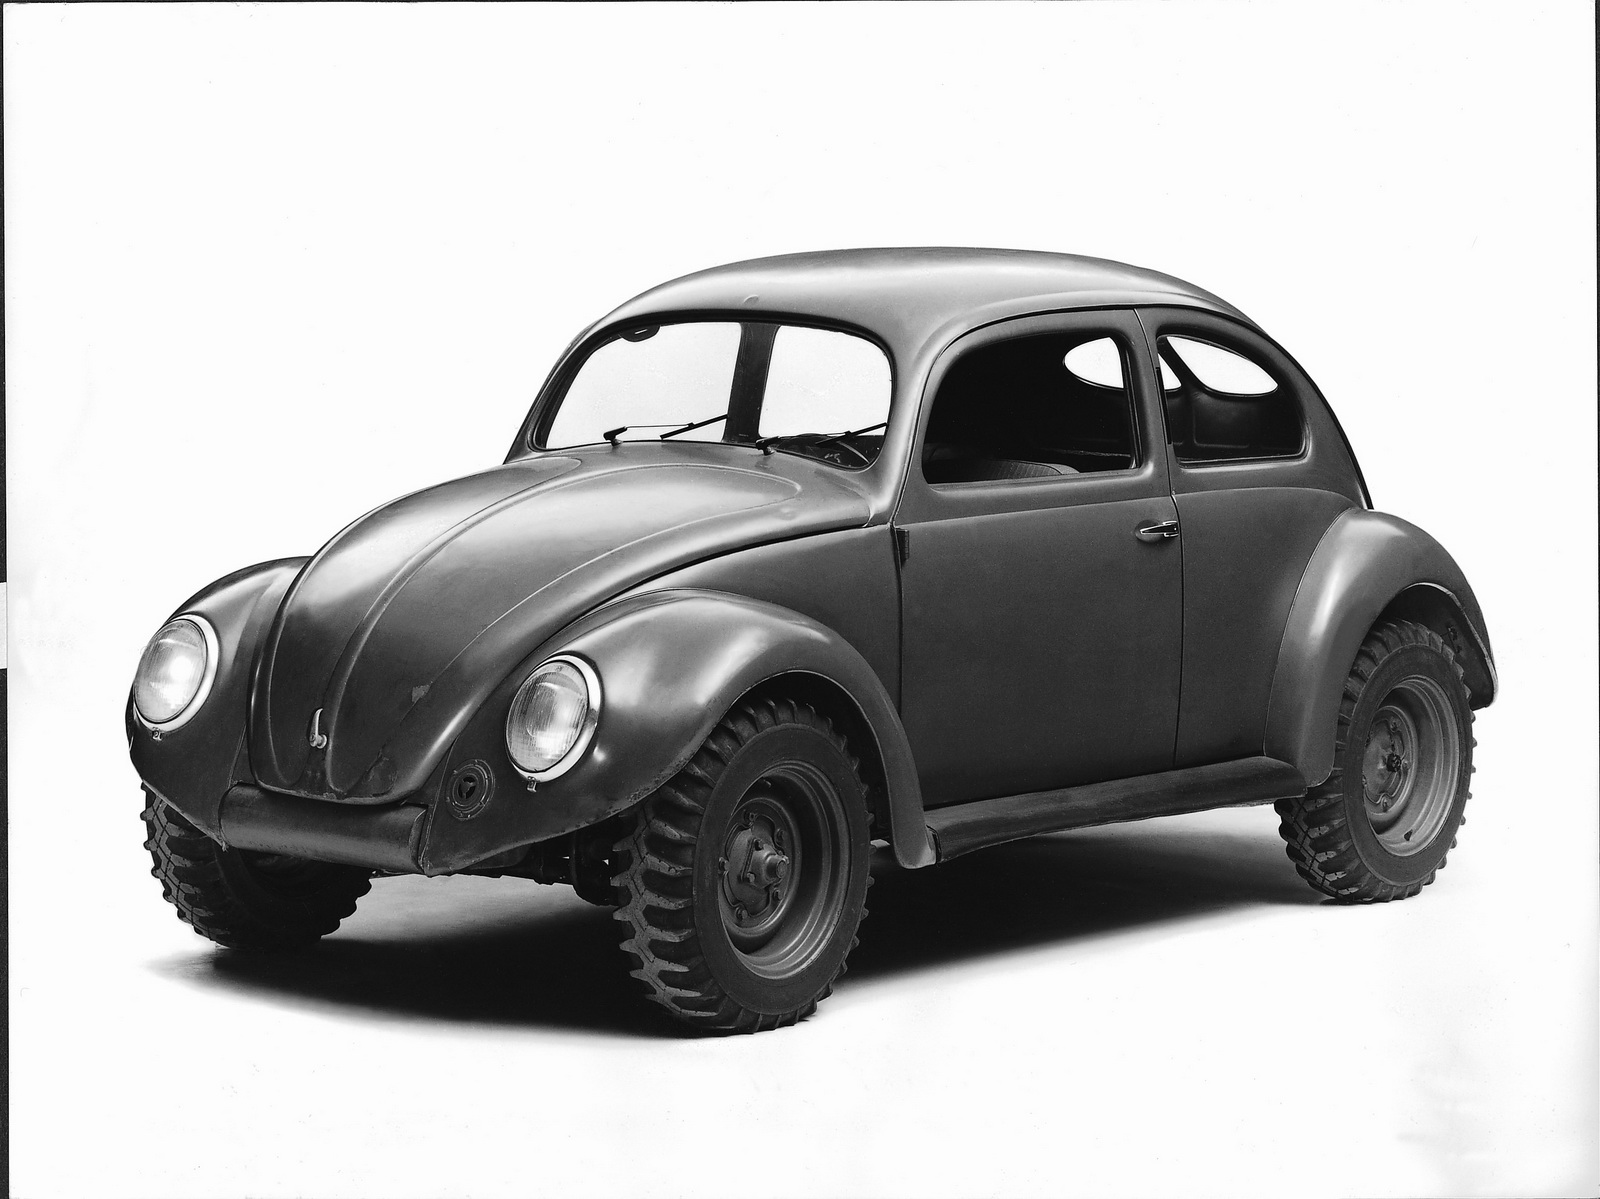 Is A Classic Vw Beetle A Good First Car